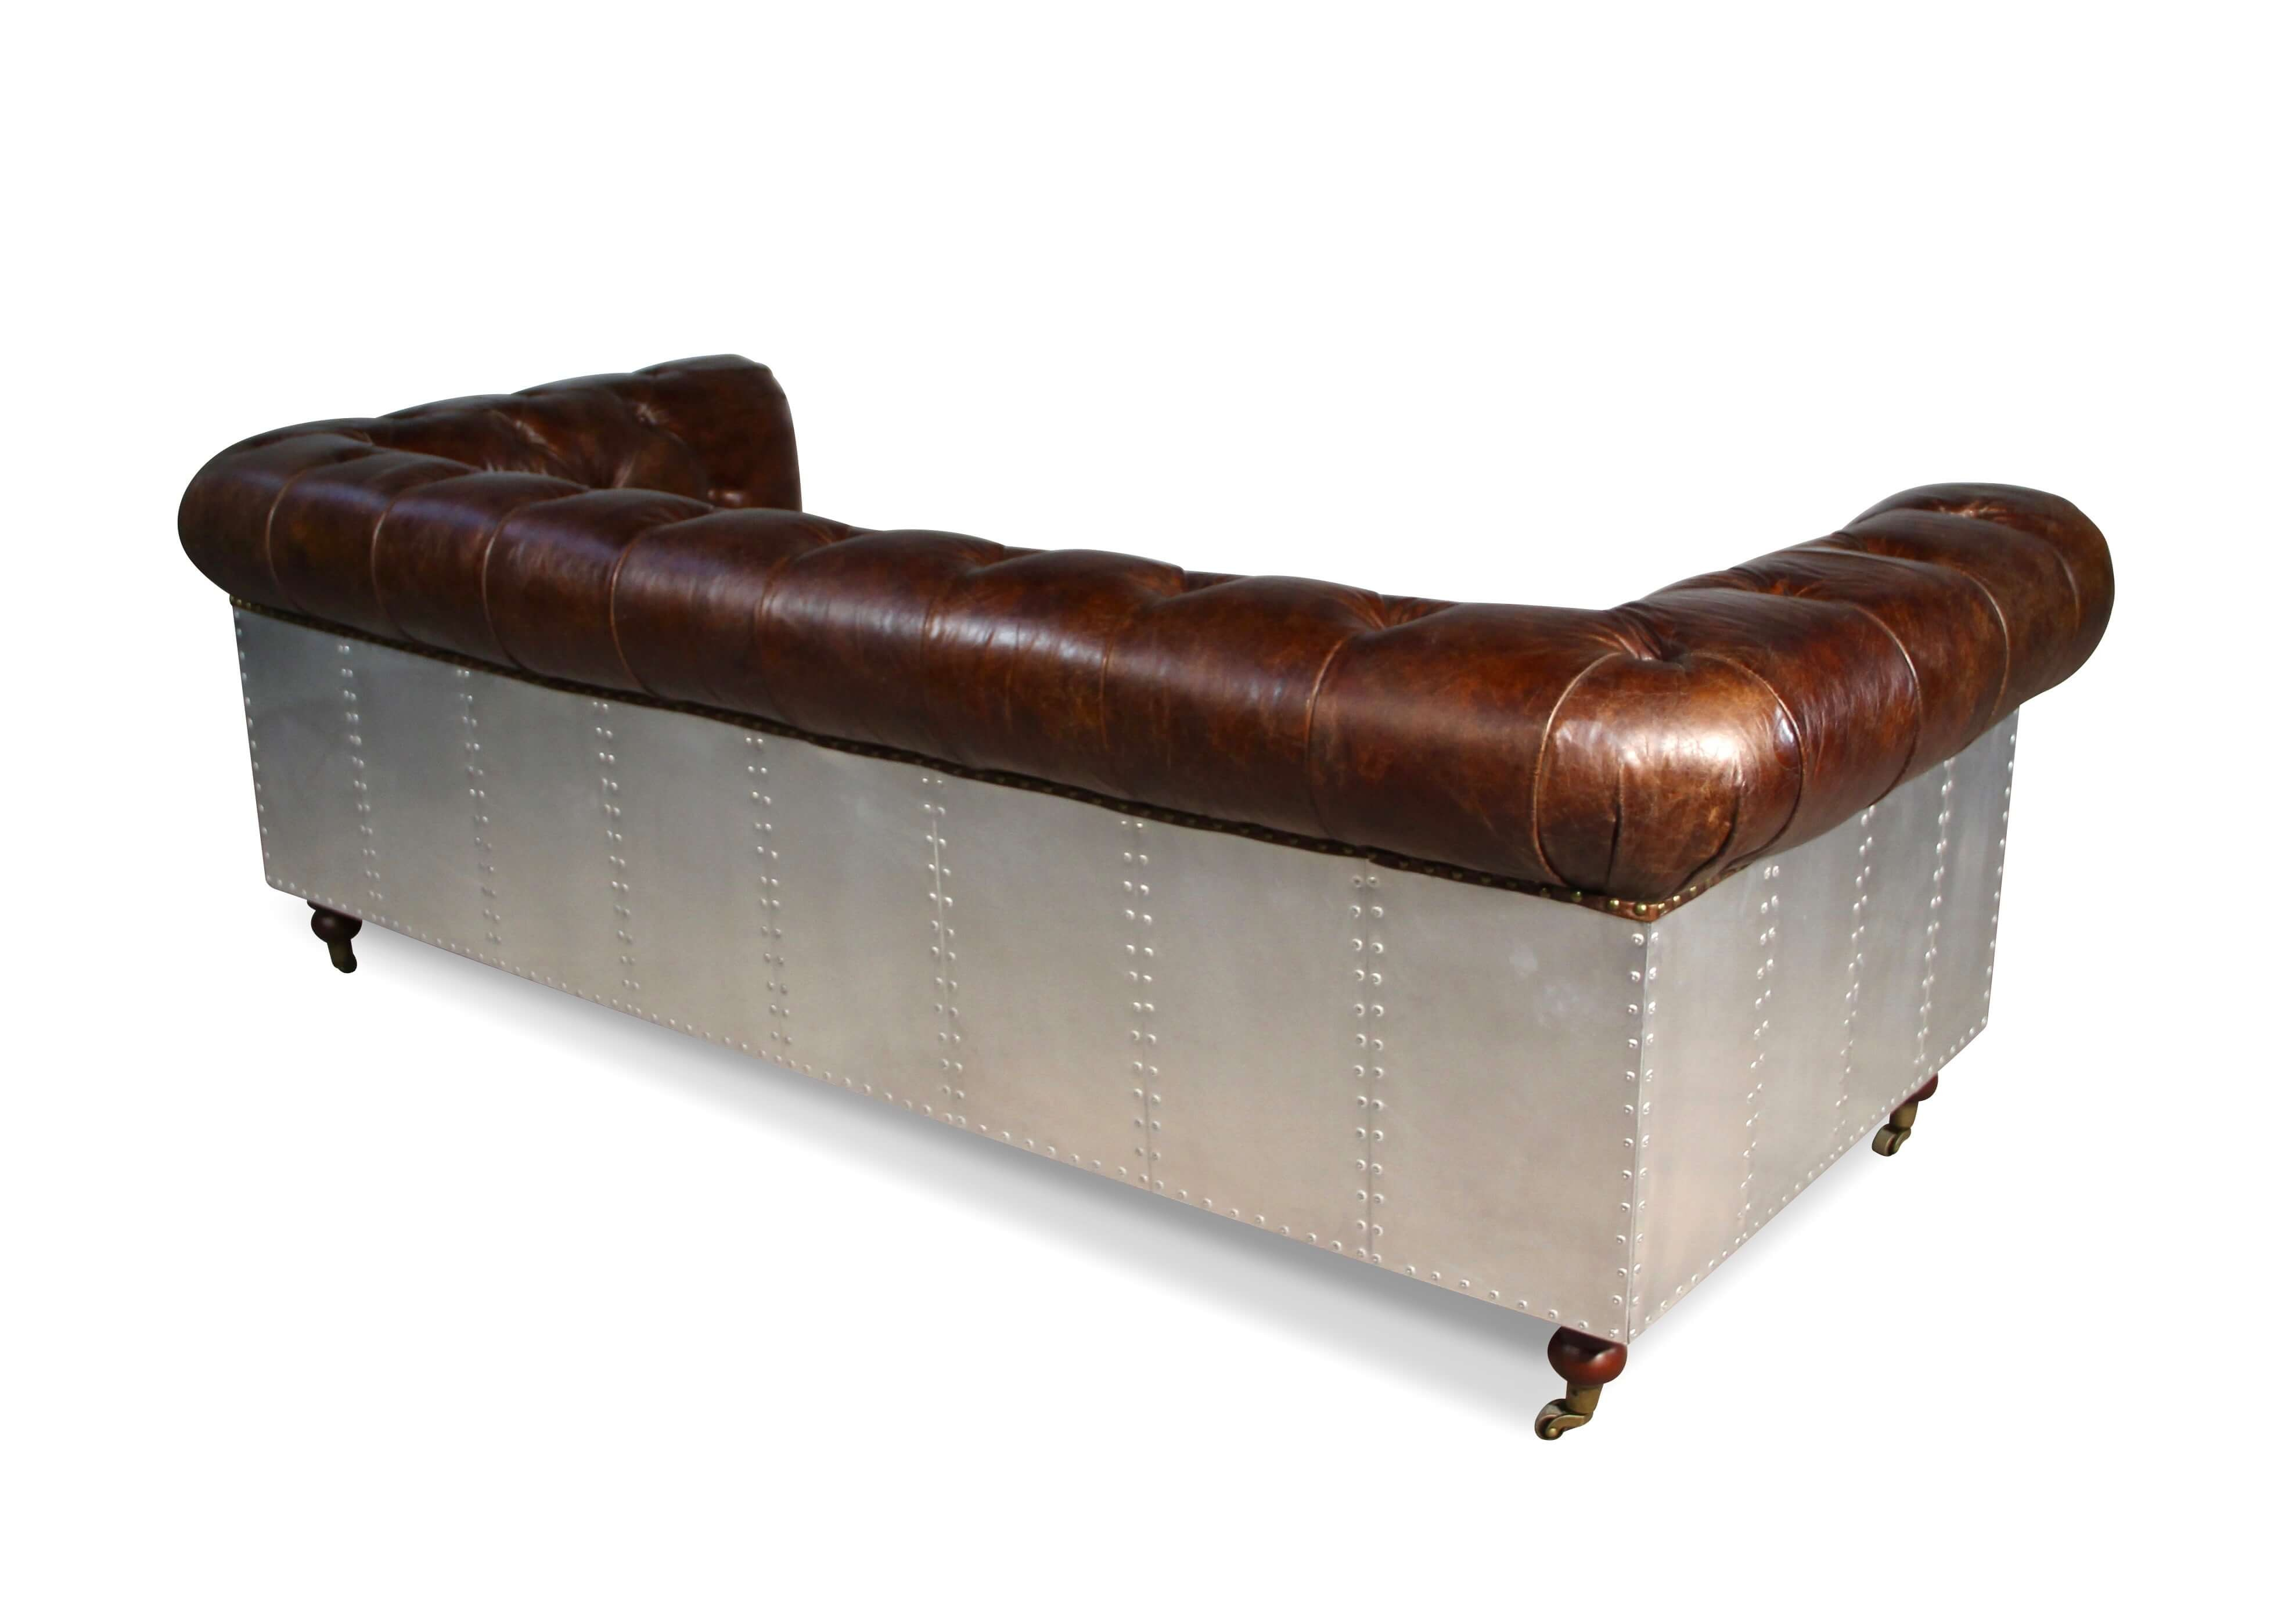 Canape Marron Vintage Canapé Chesterfield Style Aviateur 3 Places Cuir Marron Et